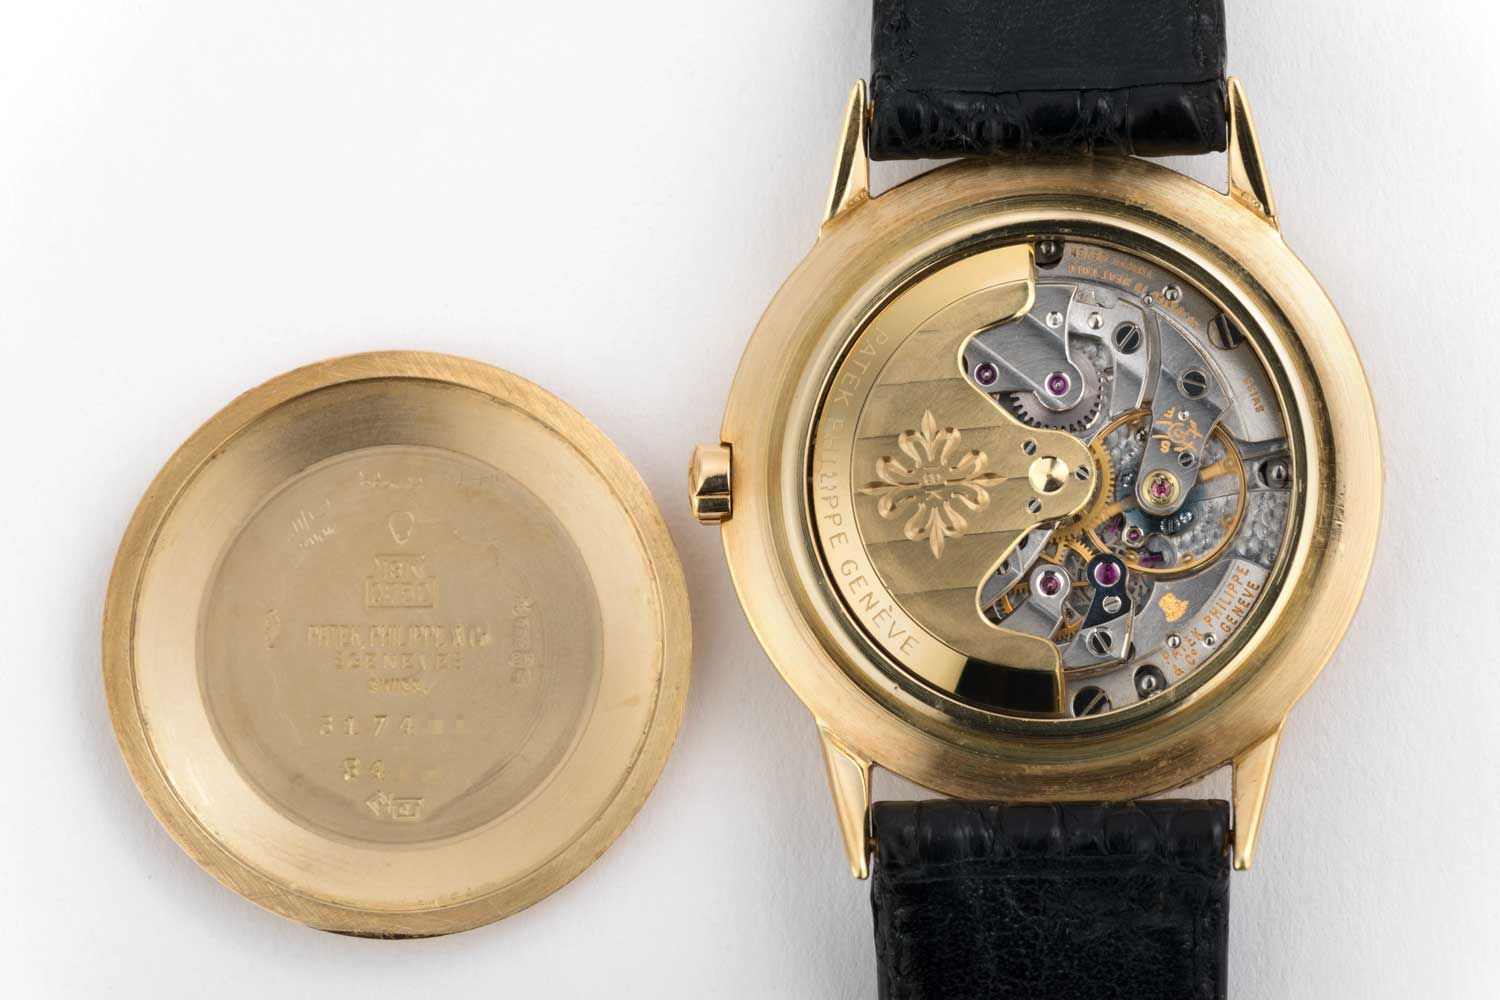 According to industry experts, there were approximately 500 examples of the reference 3448 made between 1962 and 1981 — of which about 100 were in white gold, two in rose gold, and the rest in yellow gold. (Image: The Watch Club)